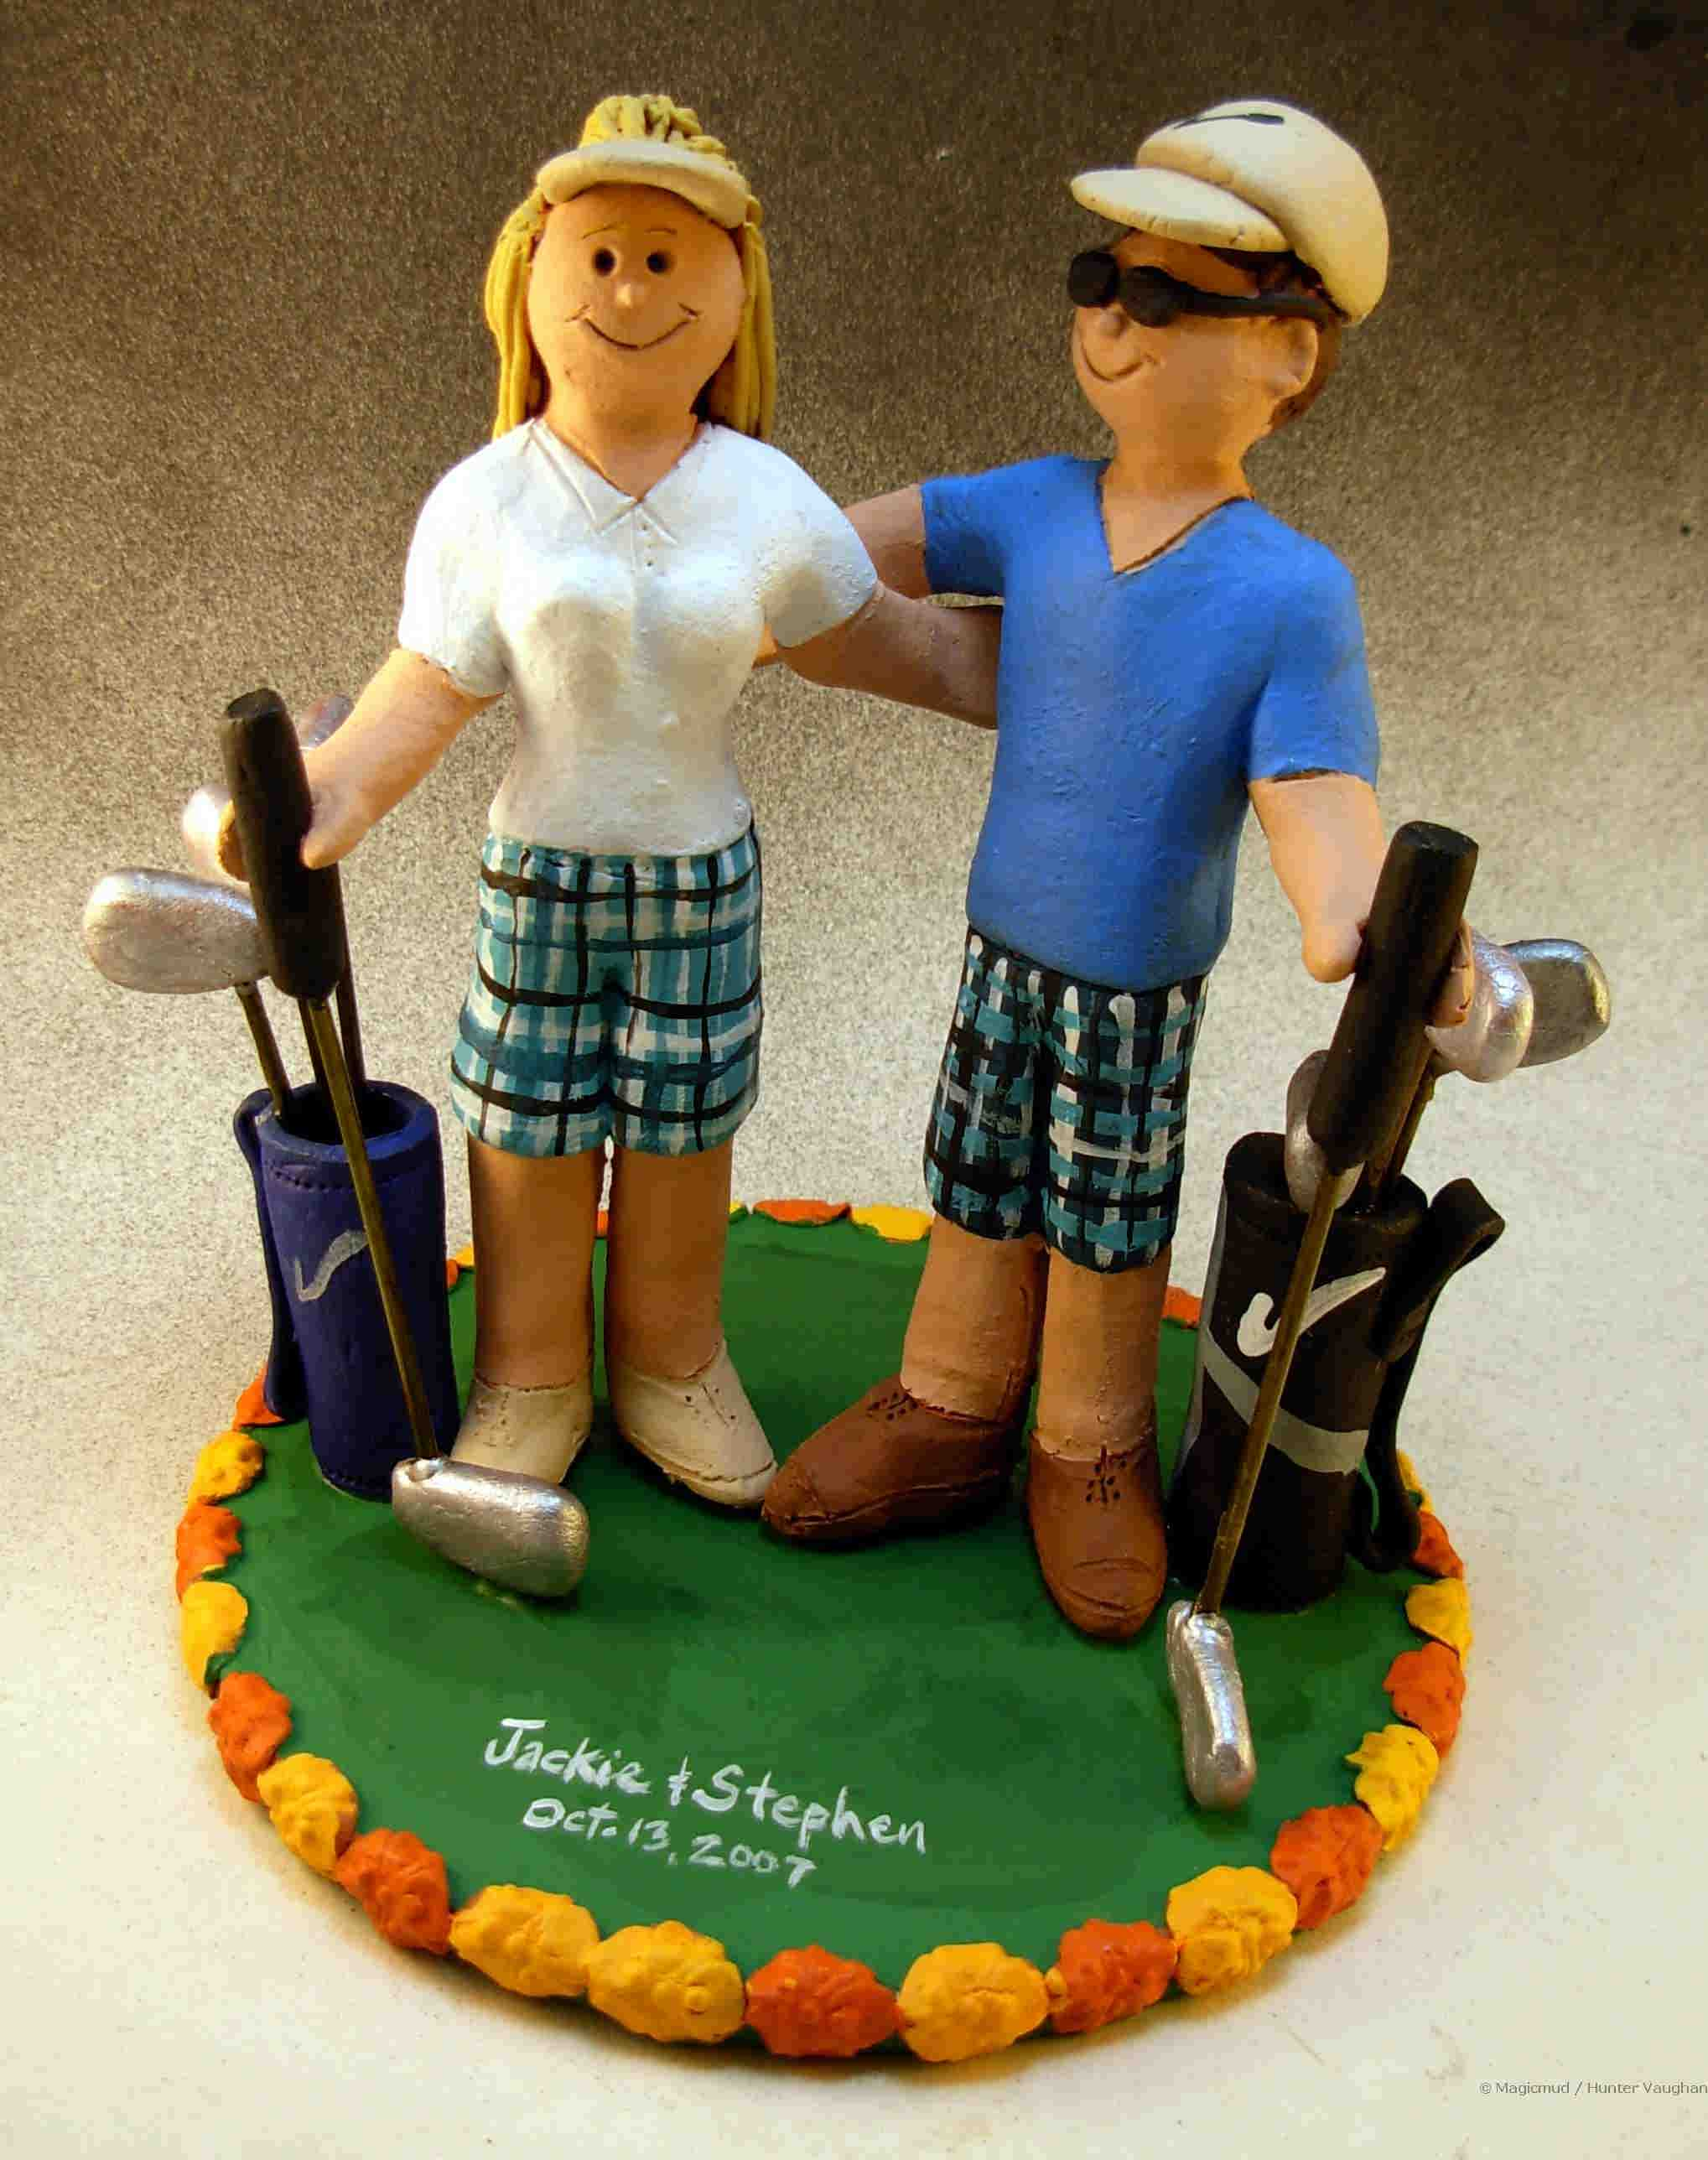 Wedding Cake Topper for Golfers